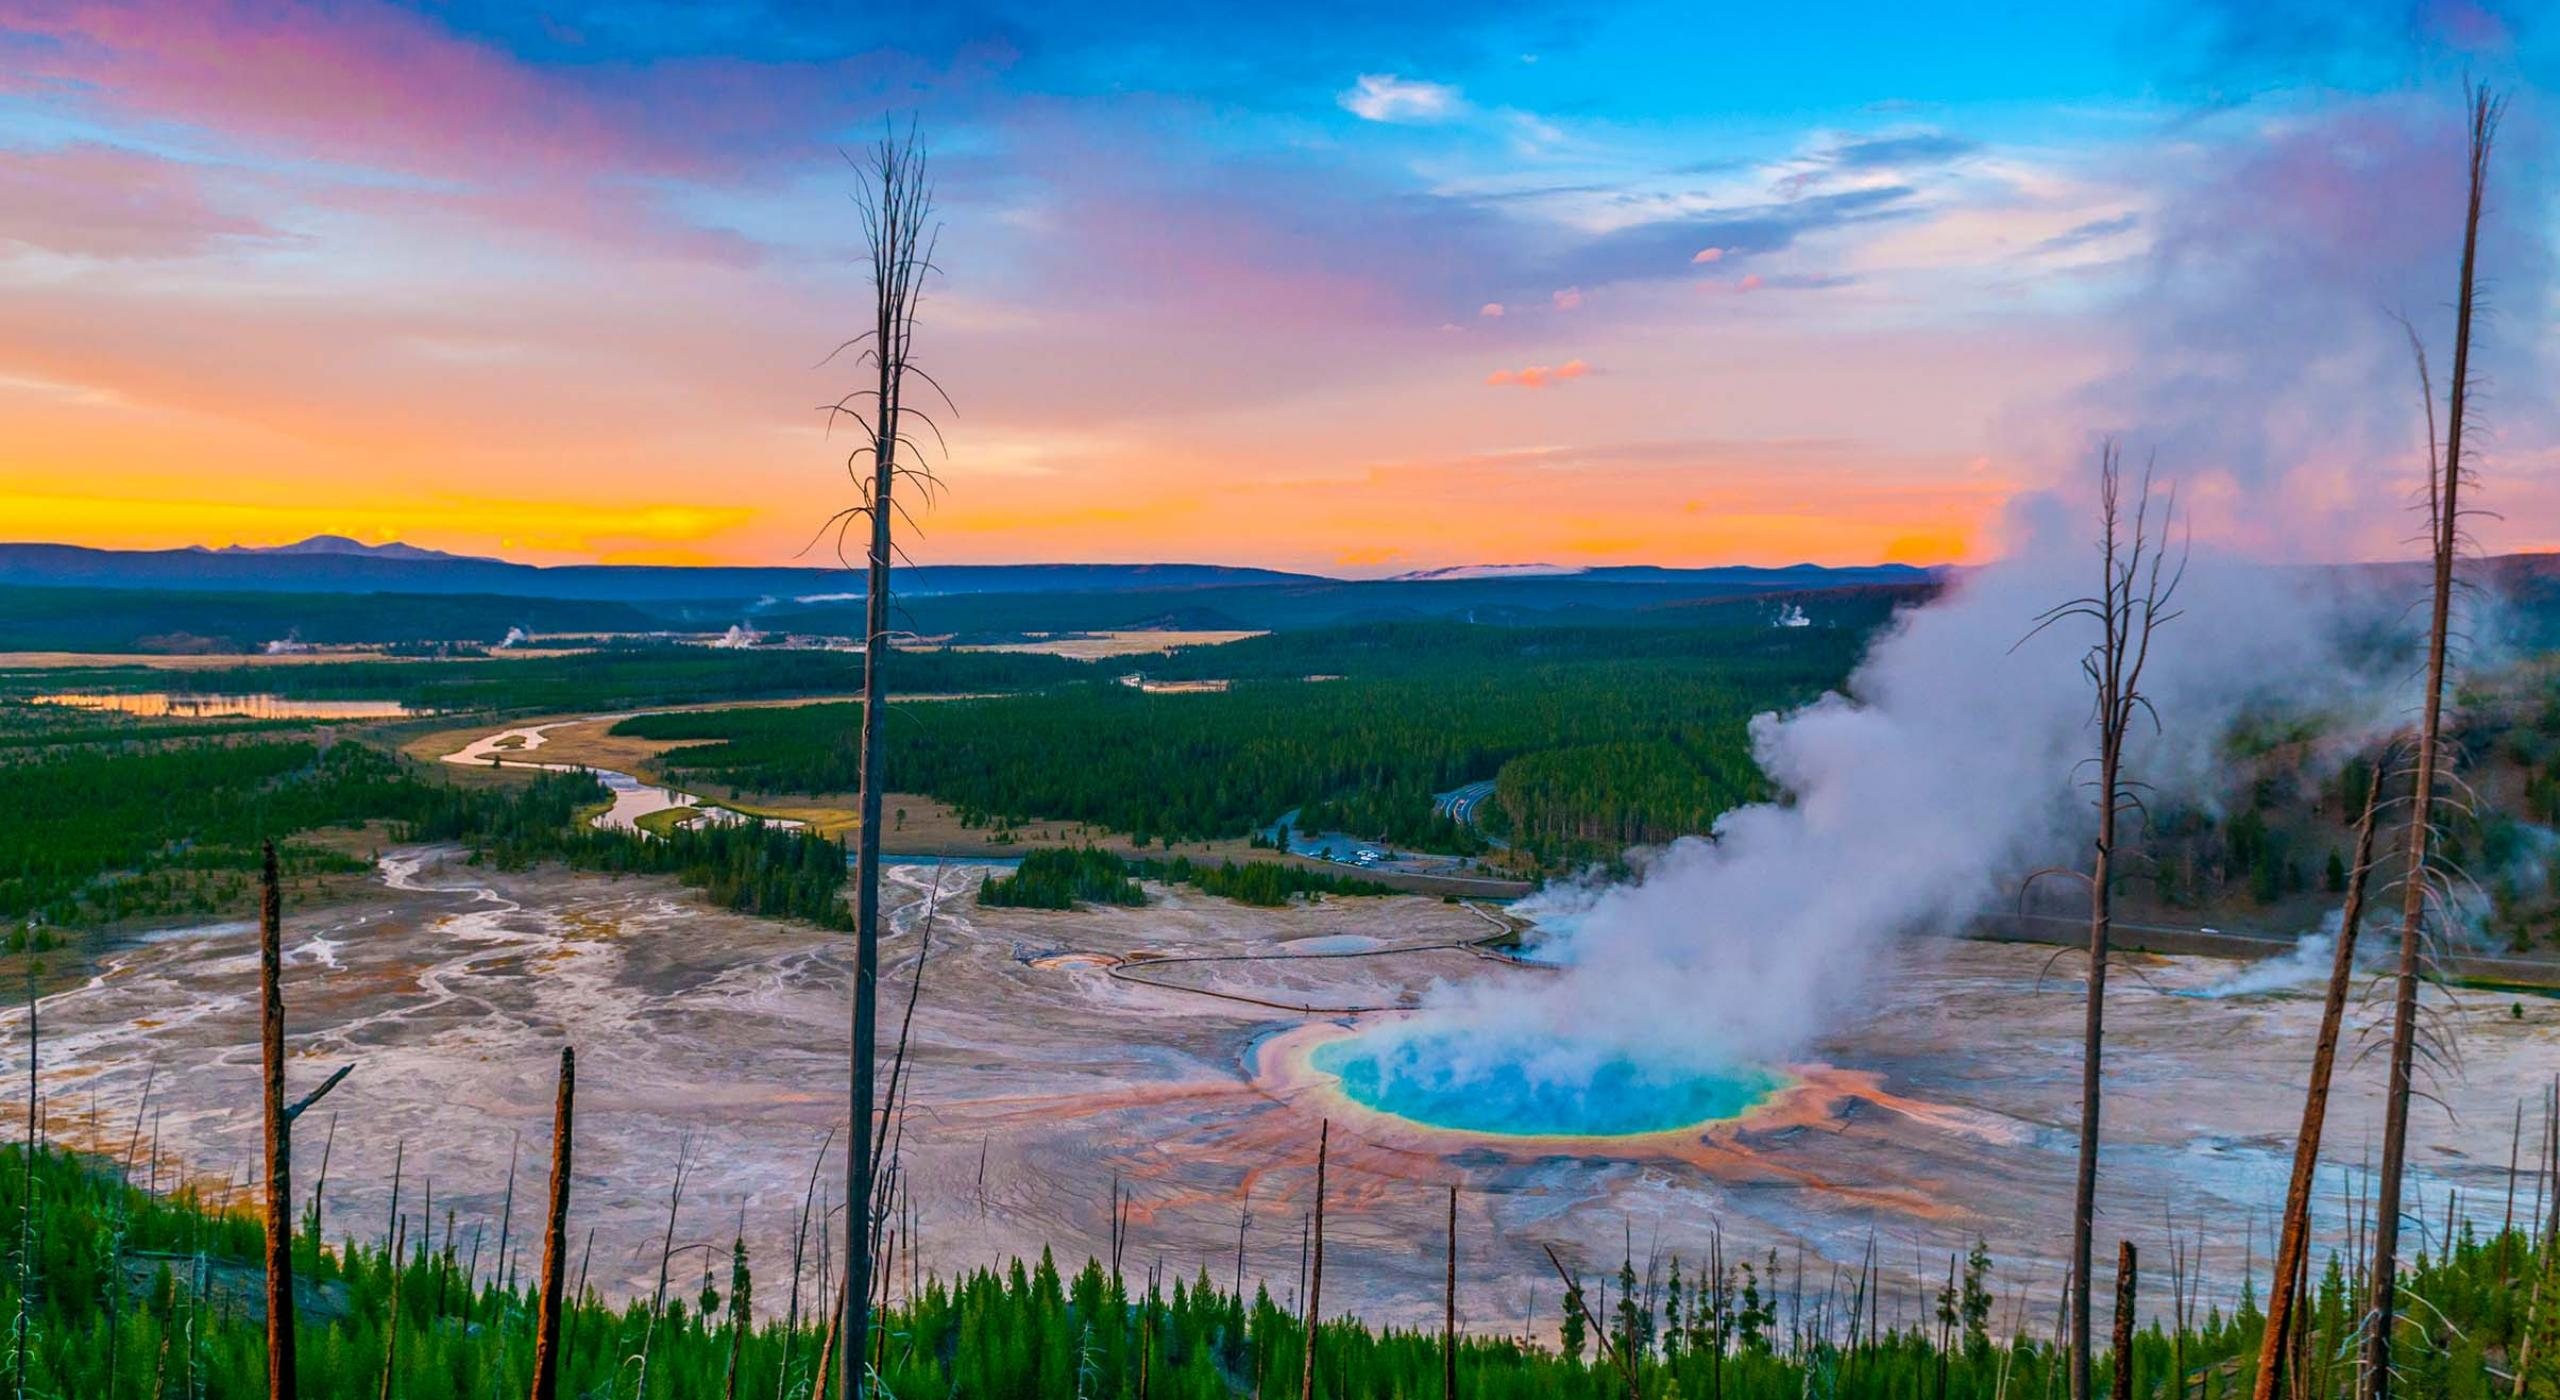 Yellowstone National Park: Peace, nature and wildlife | Visit The USA